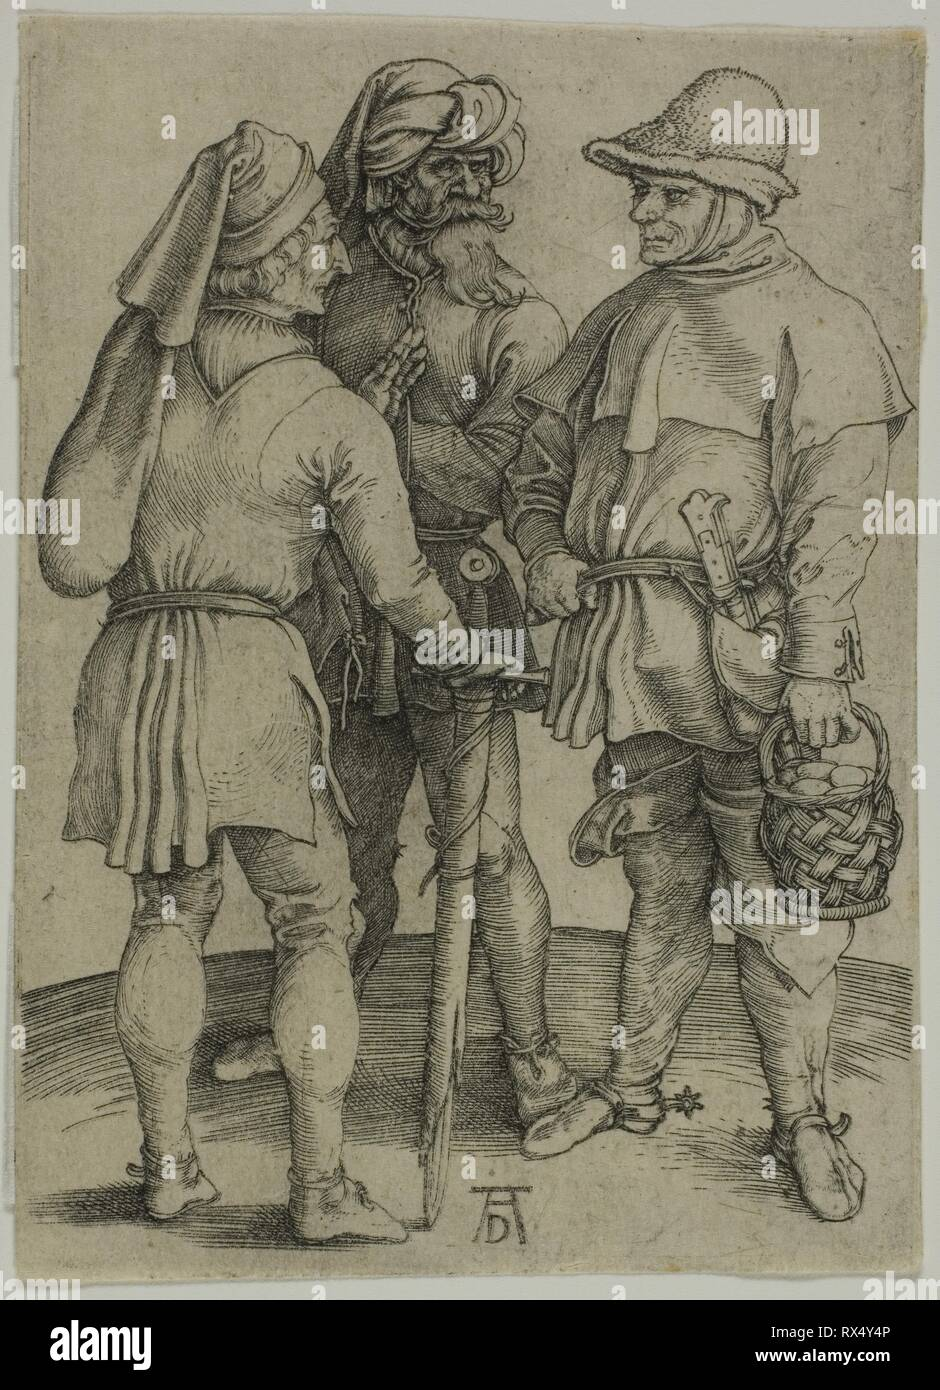 Three Peasants in Conversation. Albrecht Dürer; German, 1471-1528. Date: 1492-1502. Dimensions: 108 x 78 mm (image/sheet). Engraving in black on ivory laid paper. Origin: Germany. Museum: The Chicago Art Institute. - Stock Image